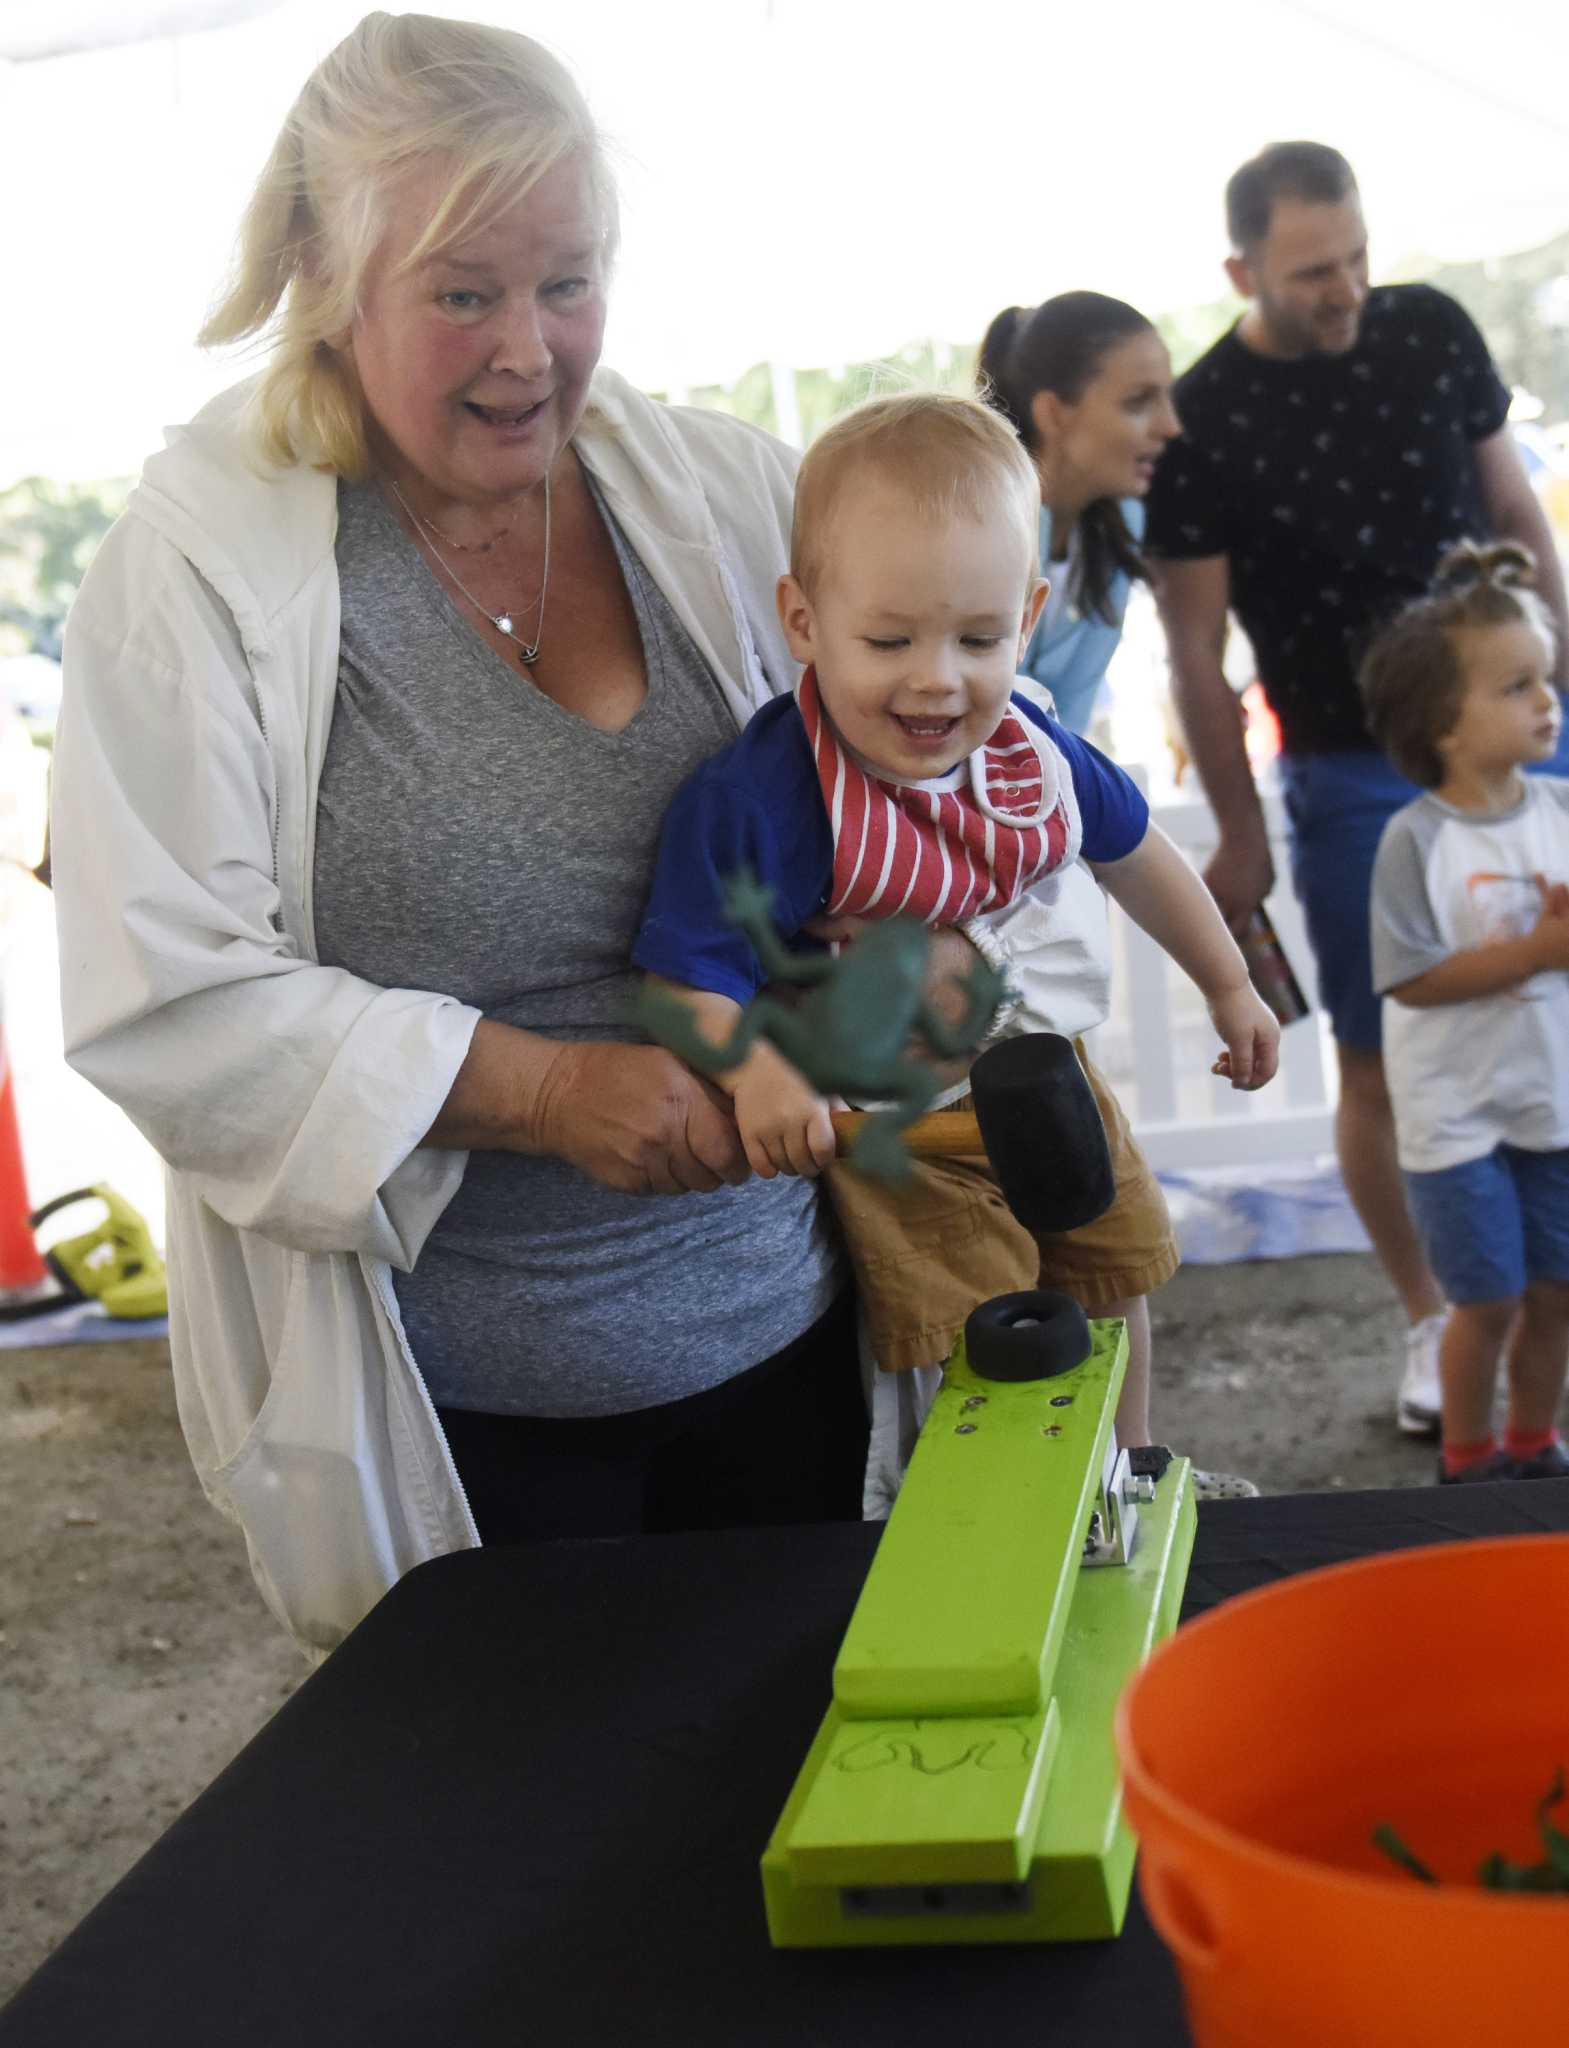 Stamford's Peggy Gray and her grandson, Casey, 1, try their luck on the frog flinger at the first of three Fall Family Fest Sundays at the Stamford Museum & Nature Center in Stamford, Conn. Sunday, Sept. 26, 2021. To celebrate the season, the Museum & Nature Center held a mini festival with added attractions, enhanced programming, and fun offerings for the whole family. The event continues on Oct. 3 and Oct. 17.